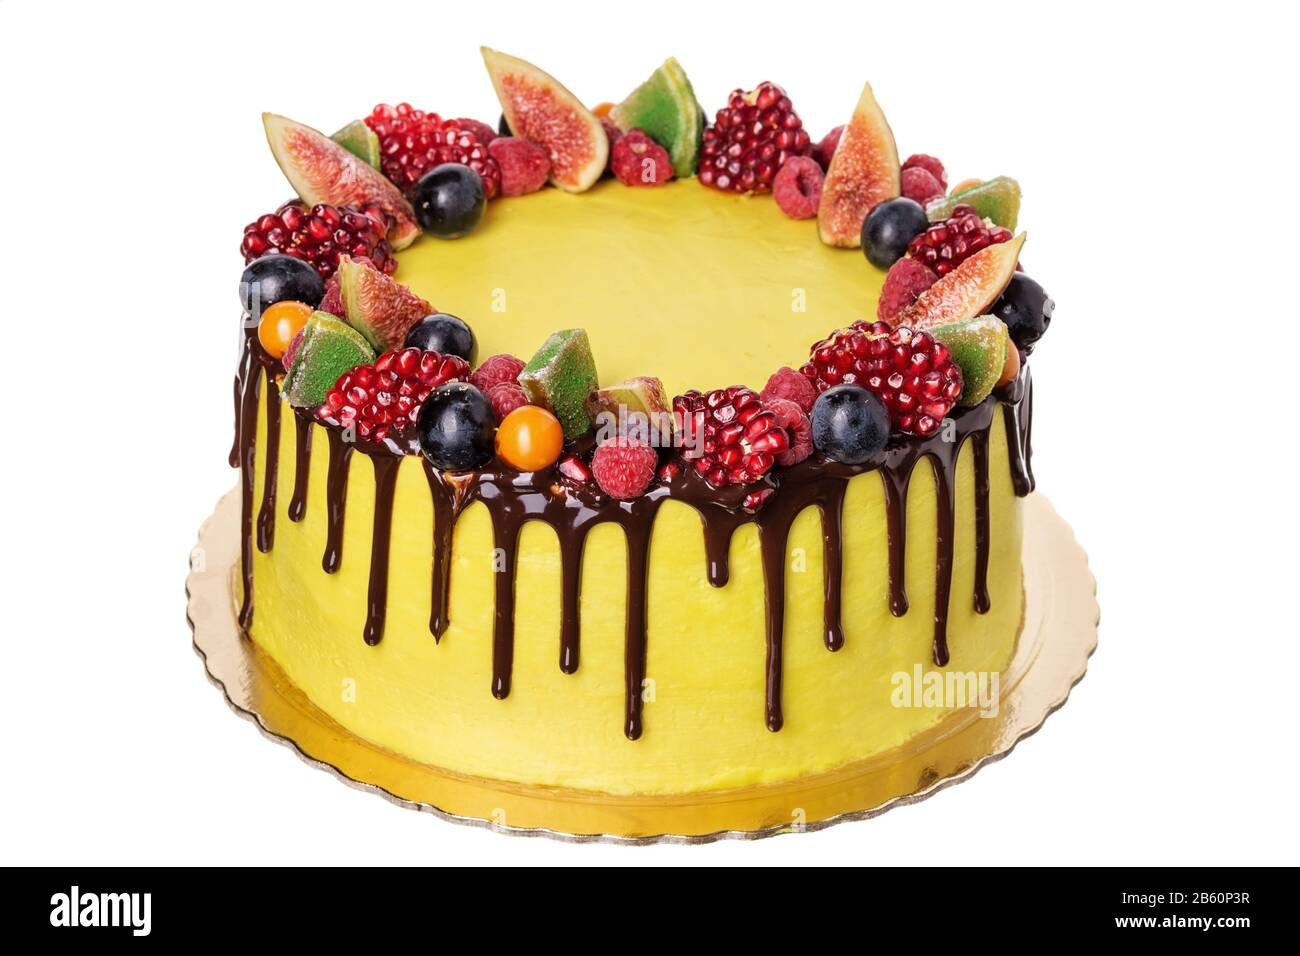 Remarkable Festive Fruit Cake Made From Sweet Ornaments On The Day Of Birth Personalised Birthday Cards Veneteletsinfo